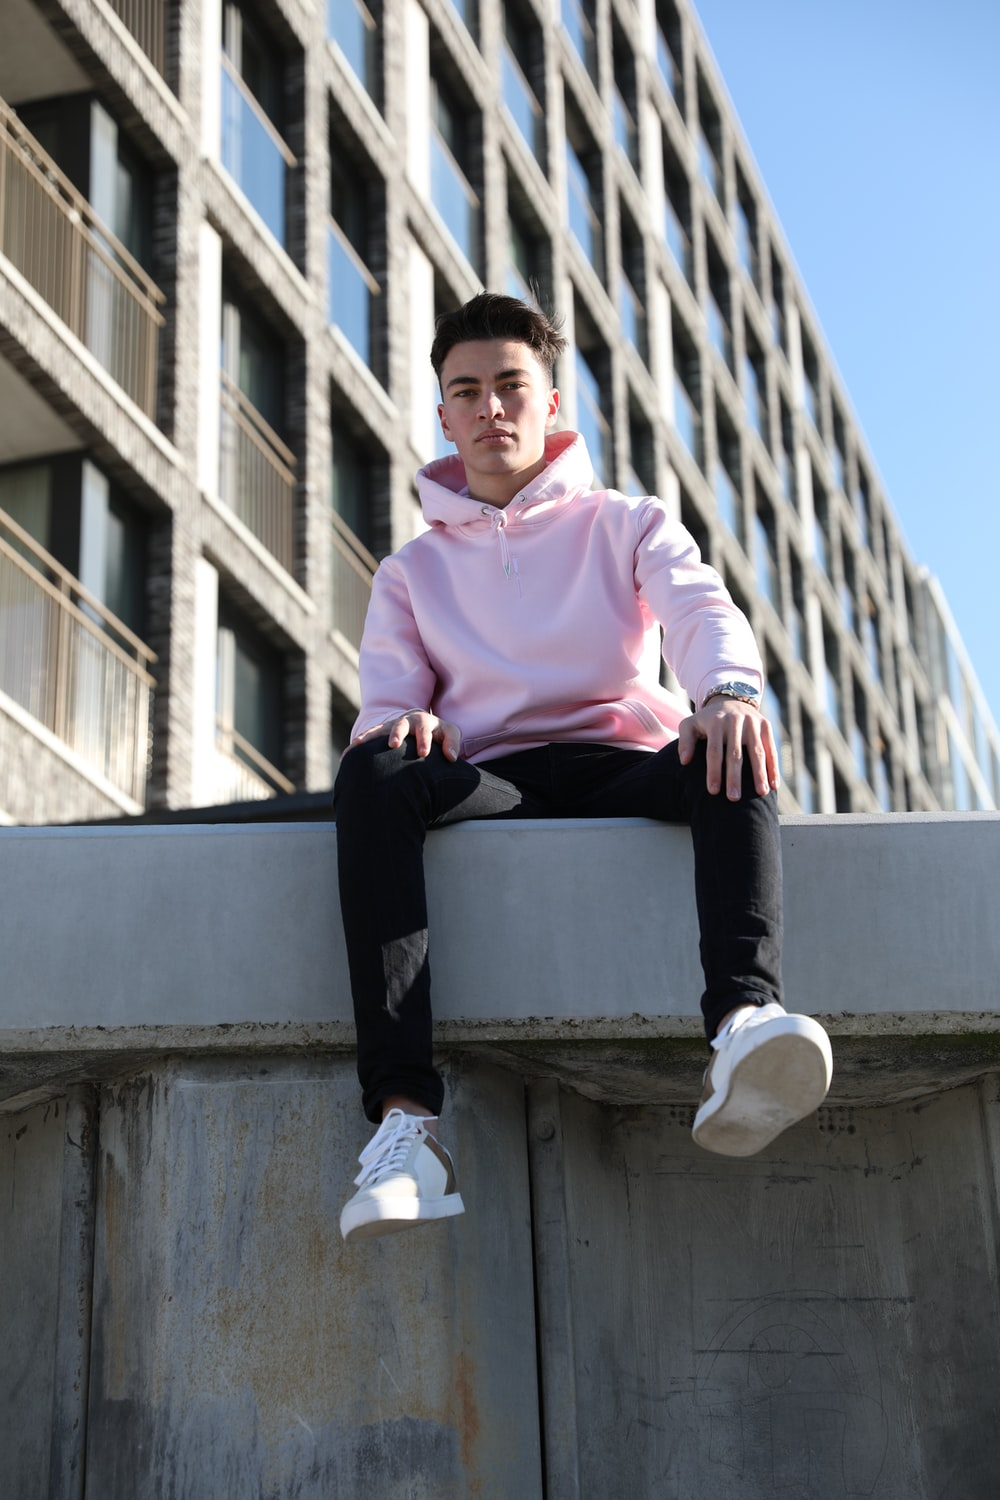 man in pink dress shirt and black pants sitting on concrete wall during daytime